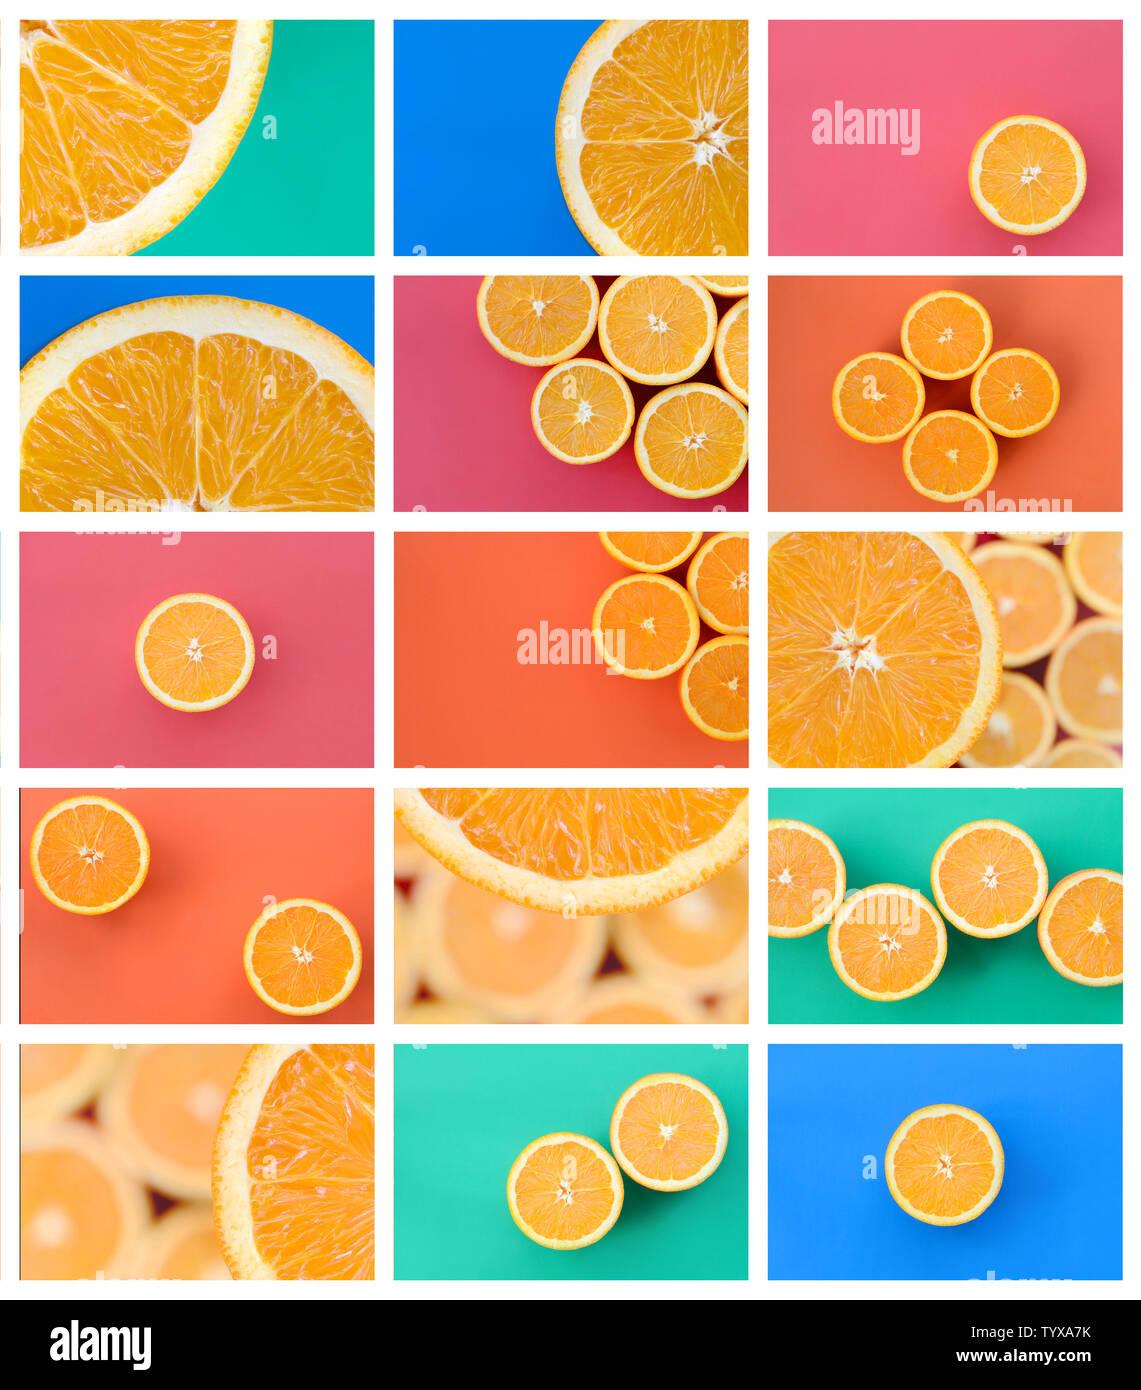 A collage of many pictures with juicy oranges. Set of images with fruits on backgrounds of different colors - Stock Image